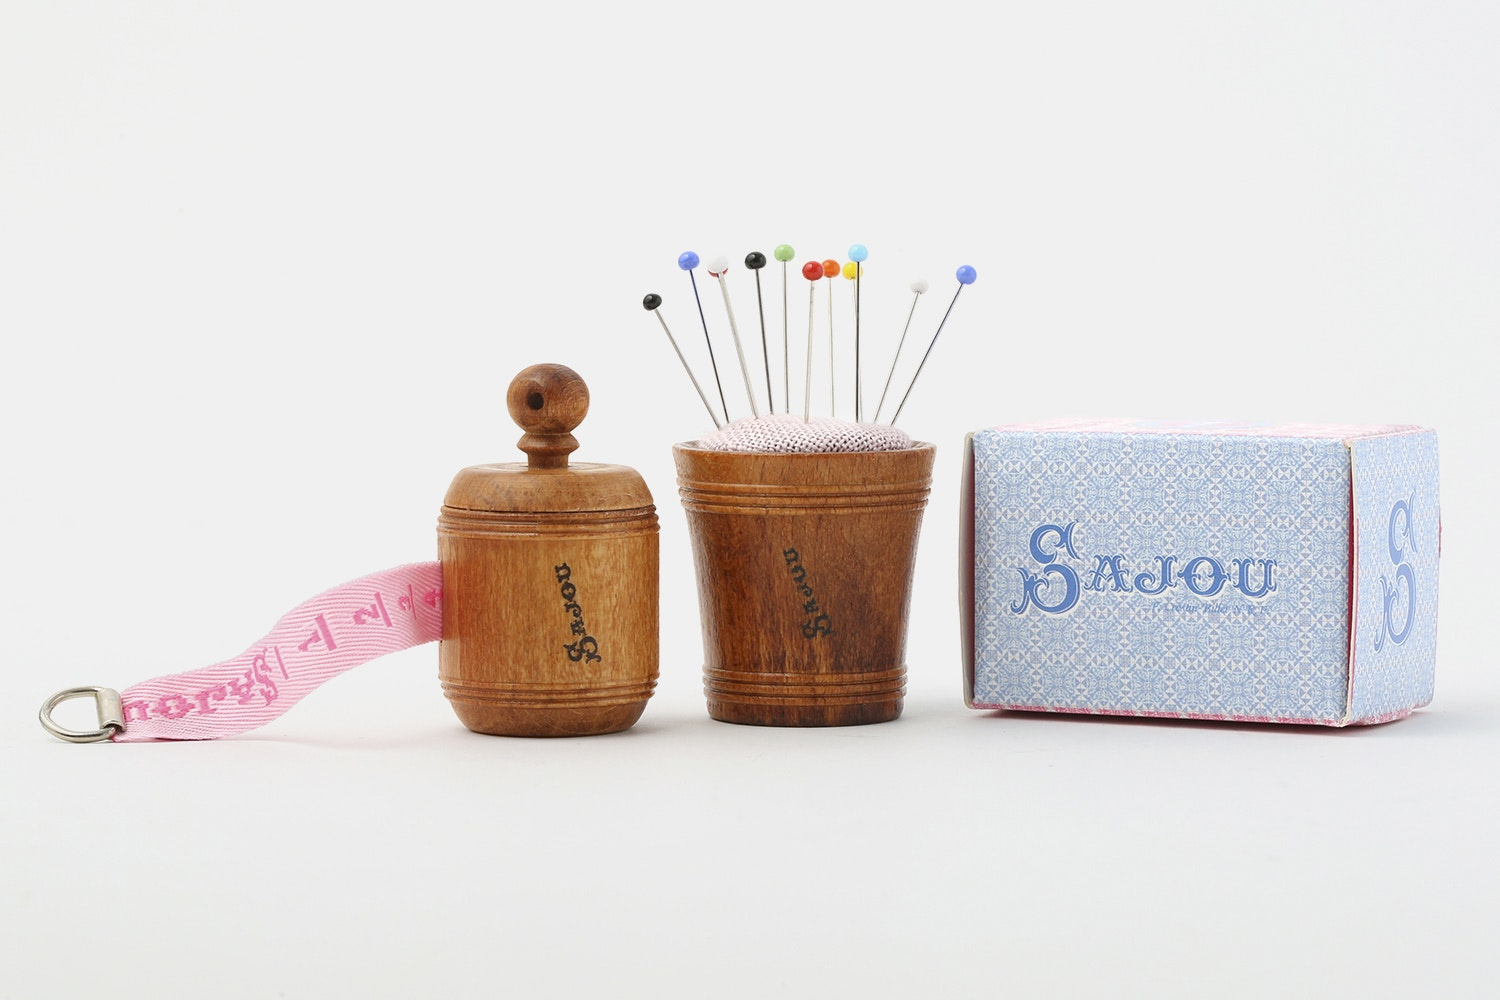 Maison Sajou Wooden Sewing Notions